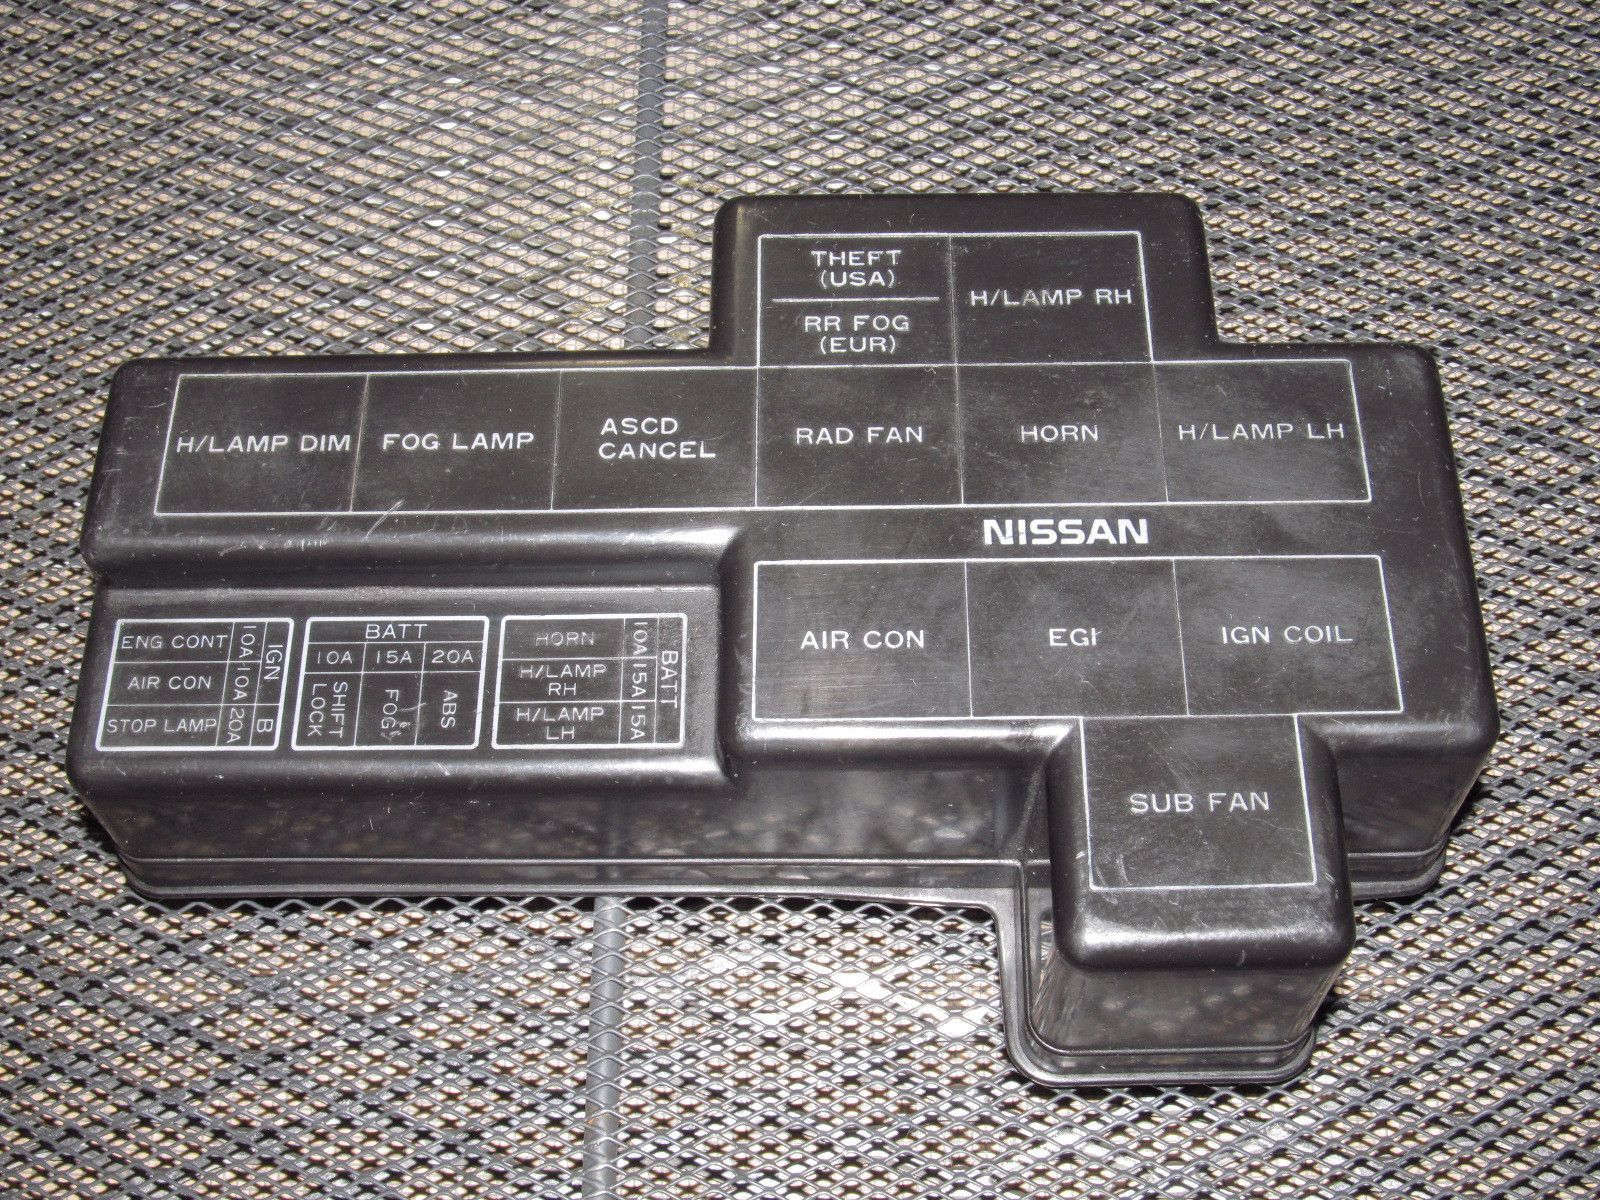 61e5bad3e8d38b9e36a270242c52ae3b 90 96 nissan 300zx oem engine fuse box cover nissan 300zx and ba fuse box at couponss.co